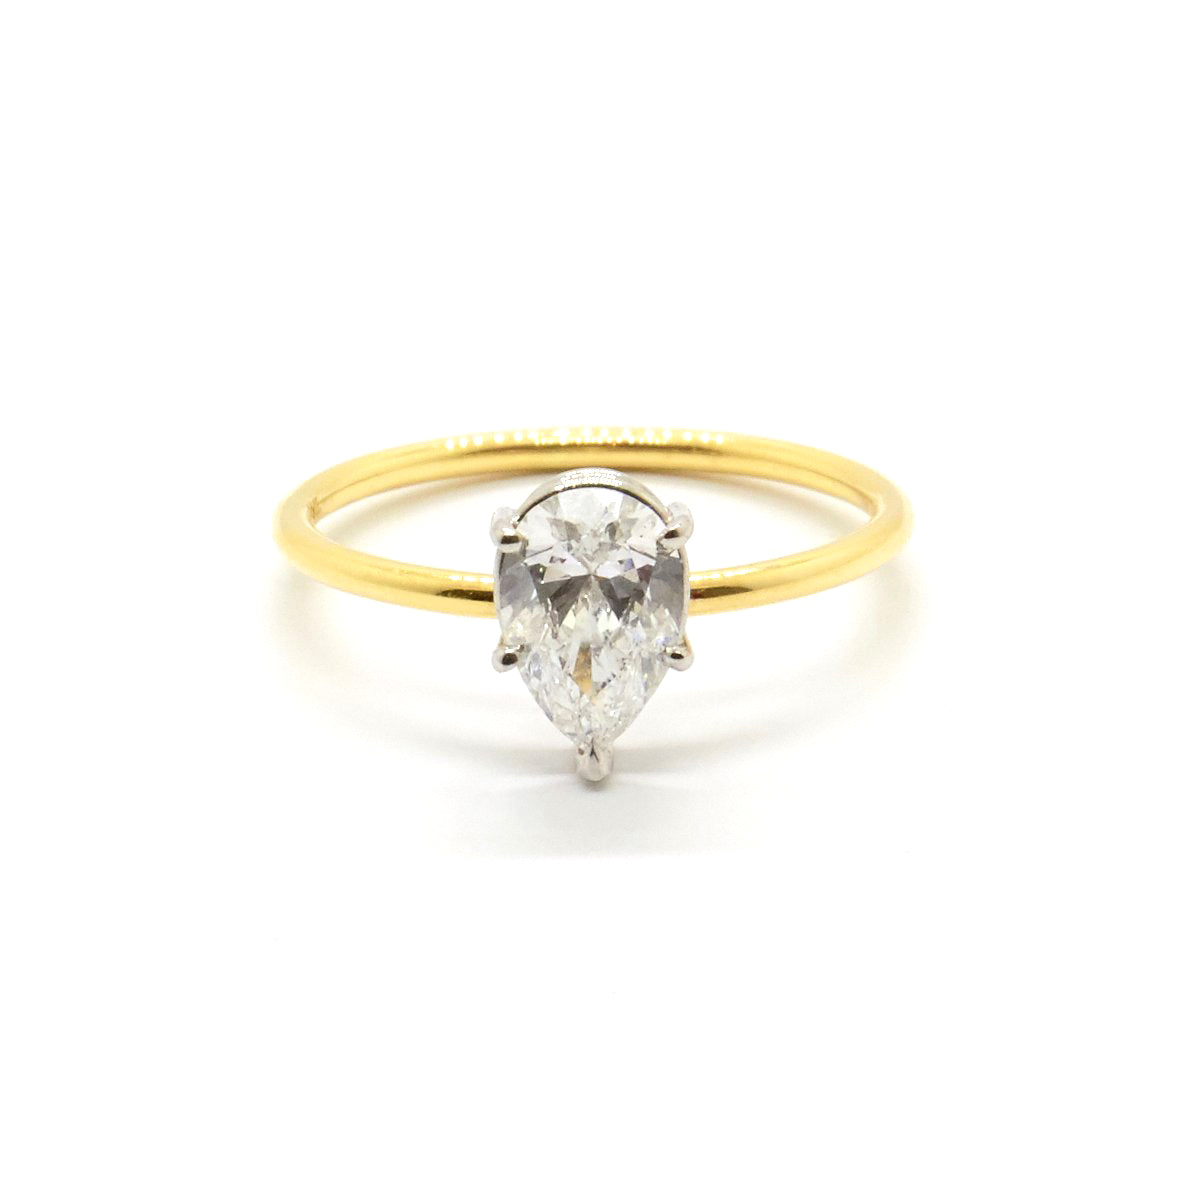 Pear cut Diamond Solitaire | 0.61 carat Diamond